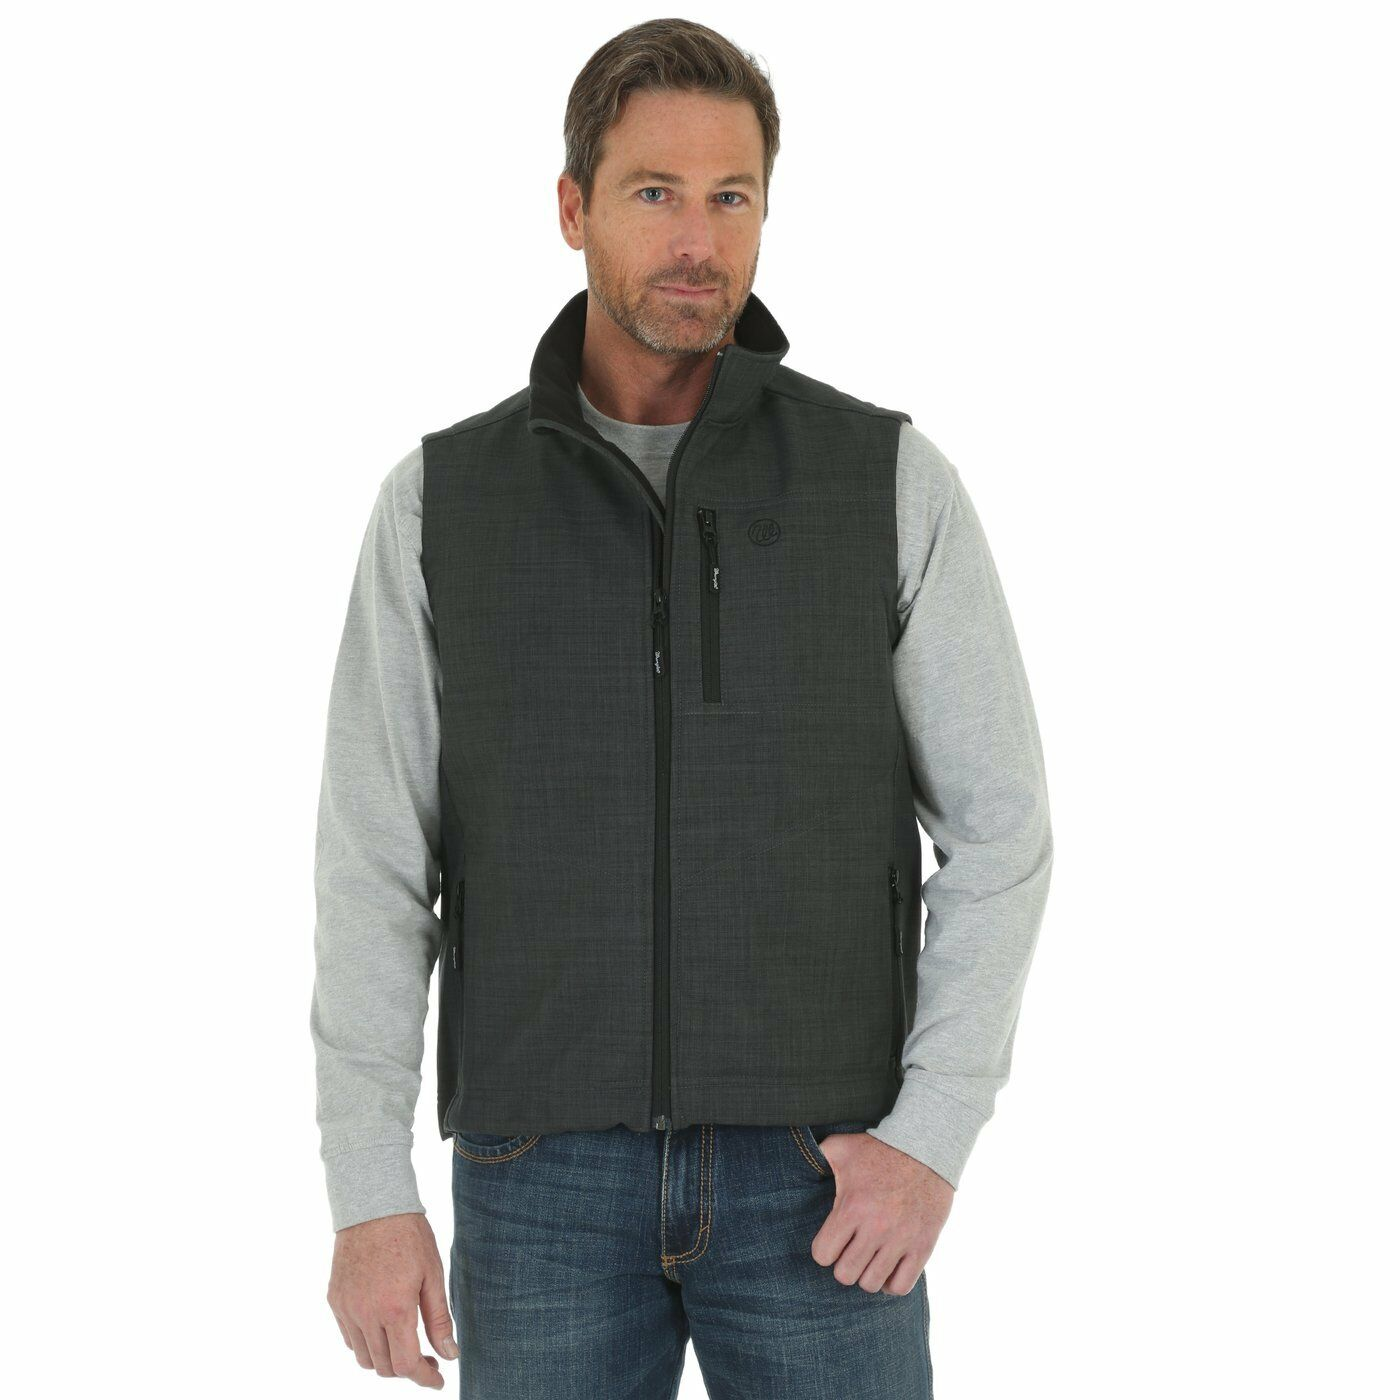 MJK018H WRANGLER® TRAIL VEST CHARCOAL- FREE SHIPPING  - No Tax Sell